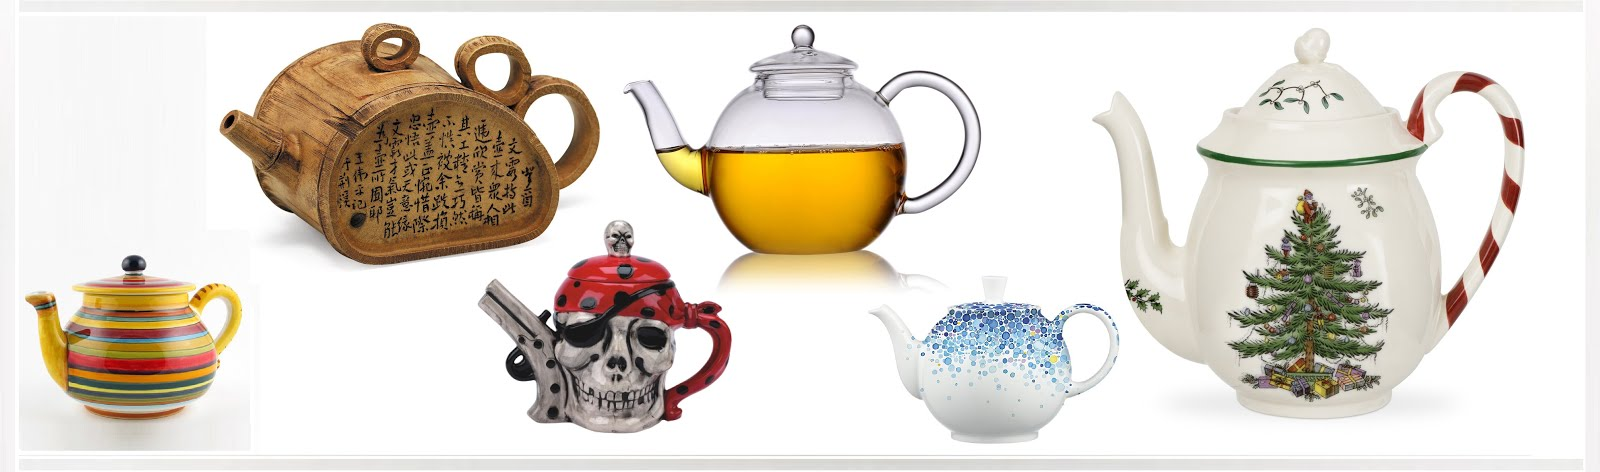 TEALEAVES.com